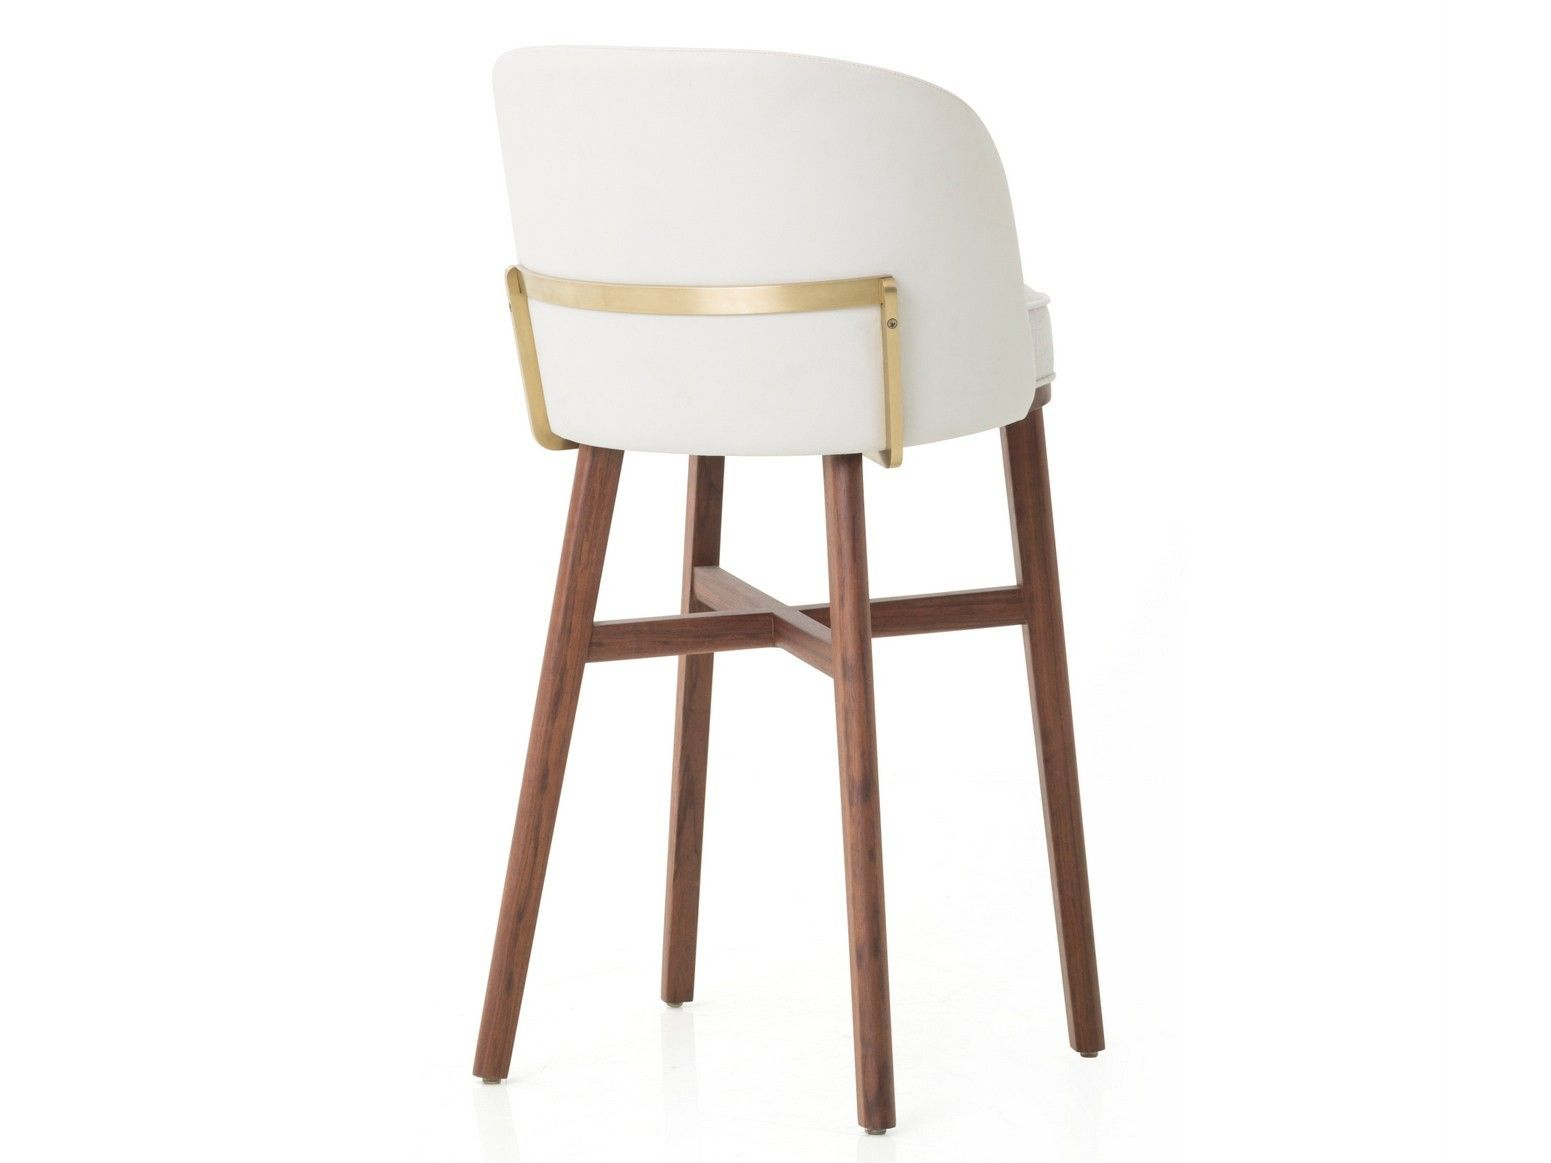 Designer High Chair High Chair Bund High Chair By Stellar Works Chairs In 2019